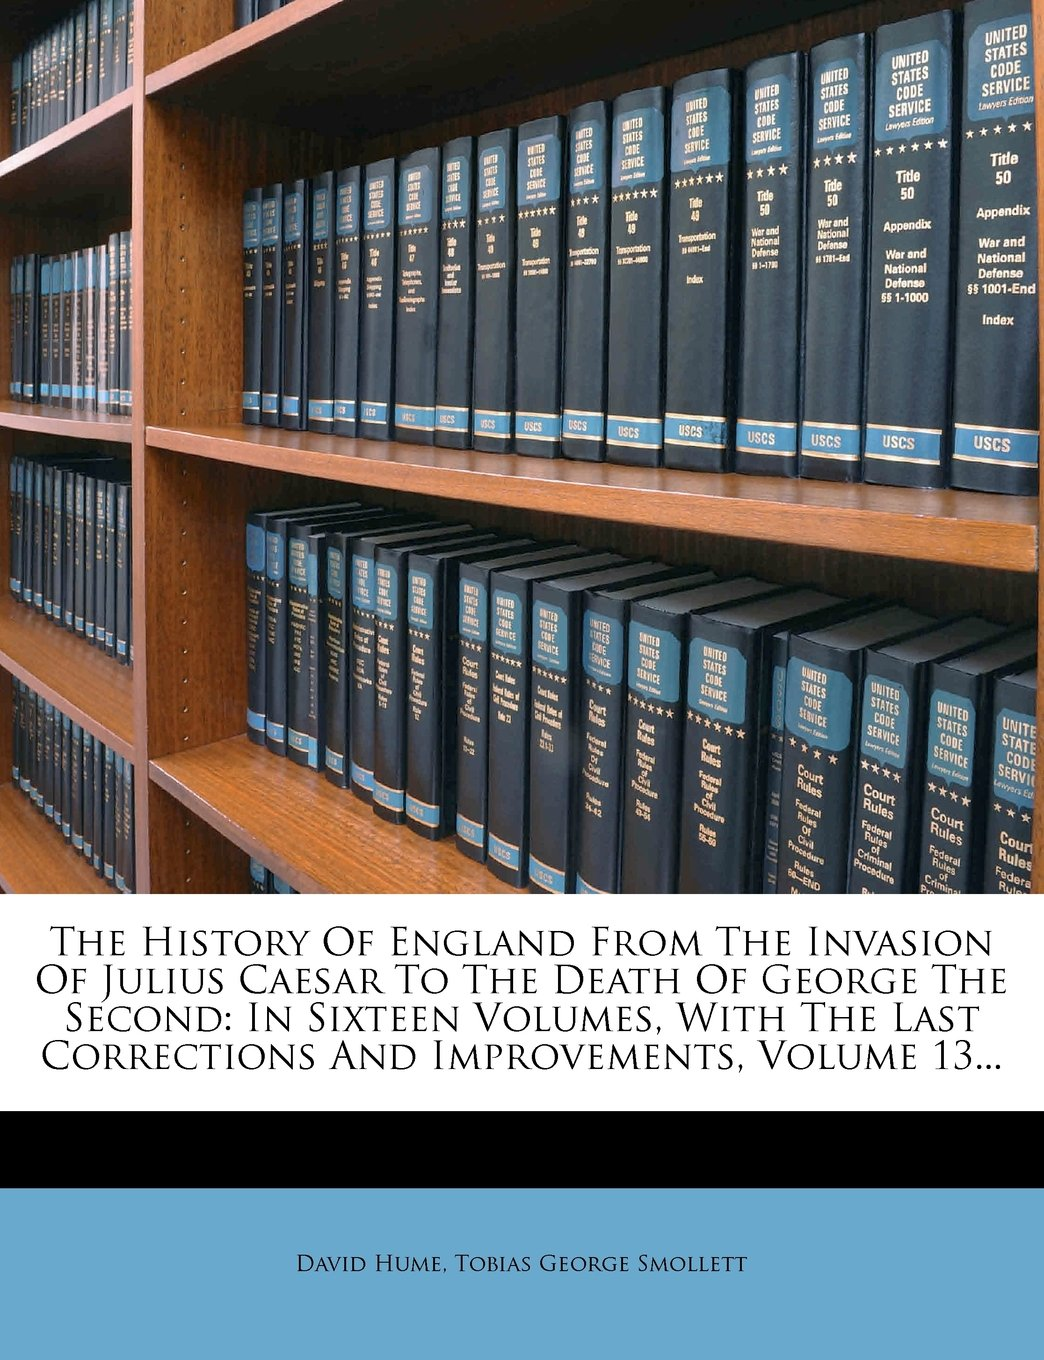 Read Online The History Of England From The Invasion Of Julius Caesar To The Death Of George The Second: In Sixteen Volumes, With The Last Corrections And Improvements, Volume 13... pdf epub